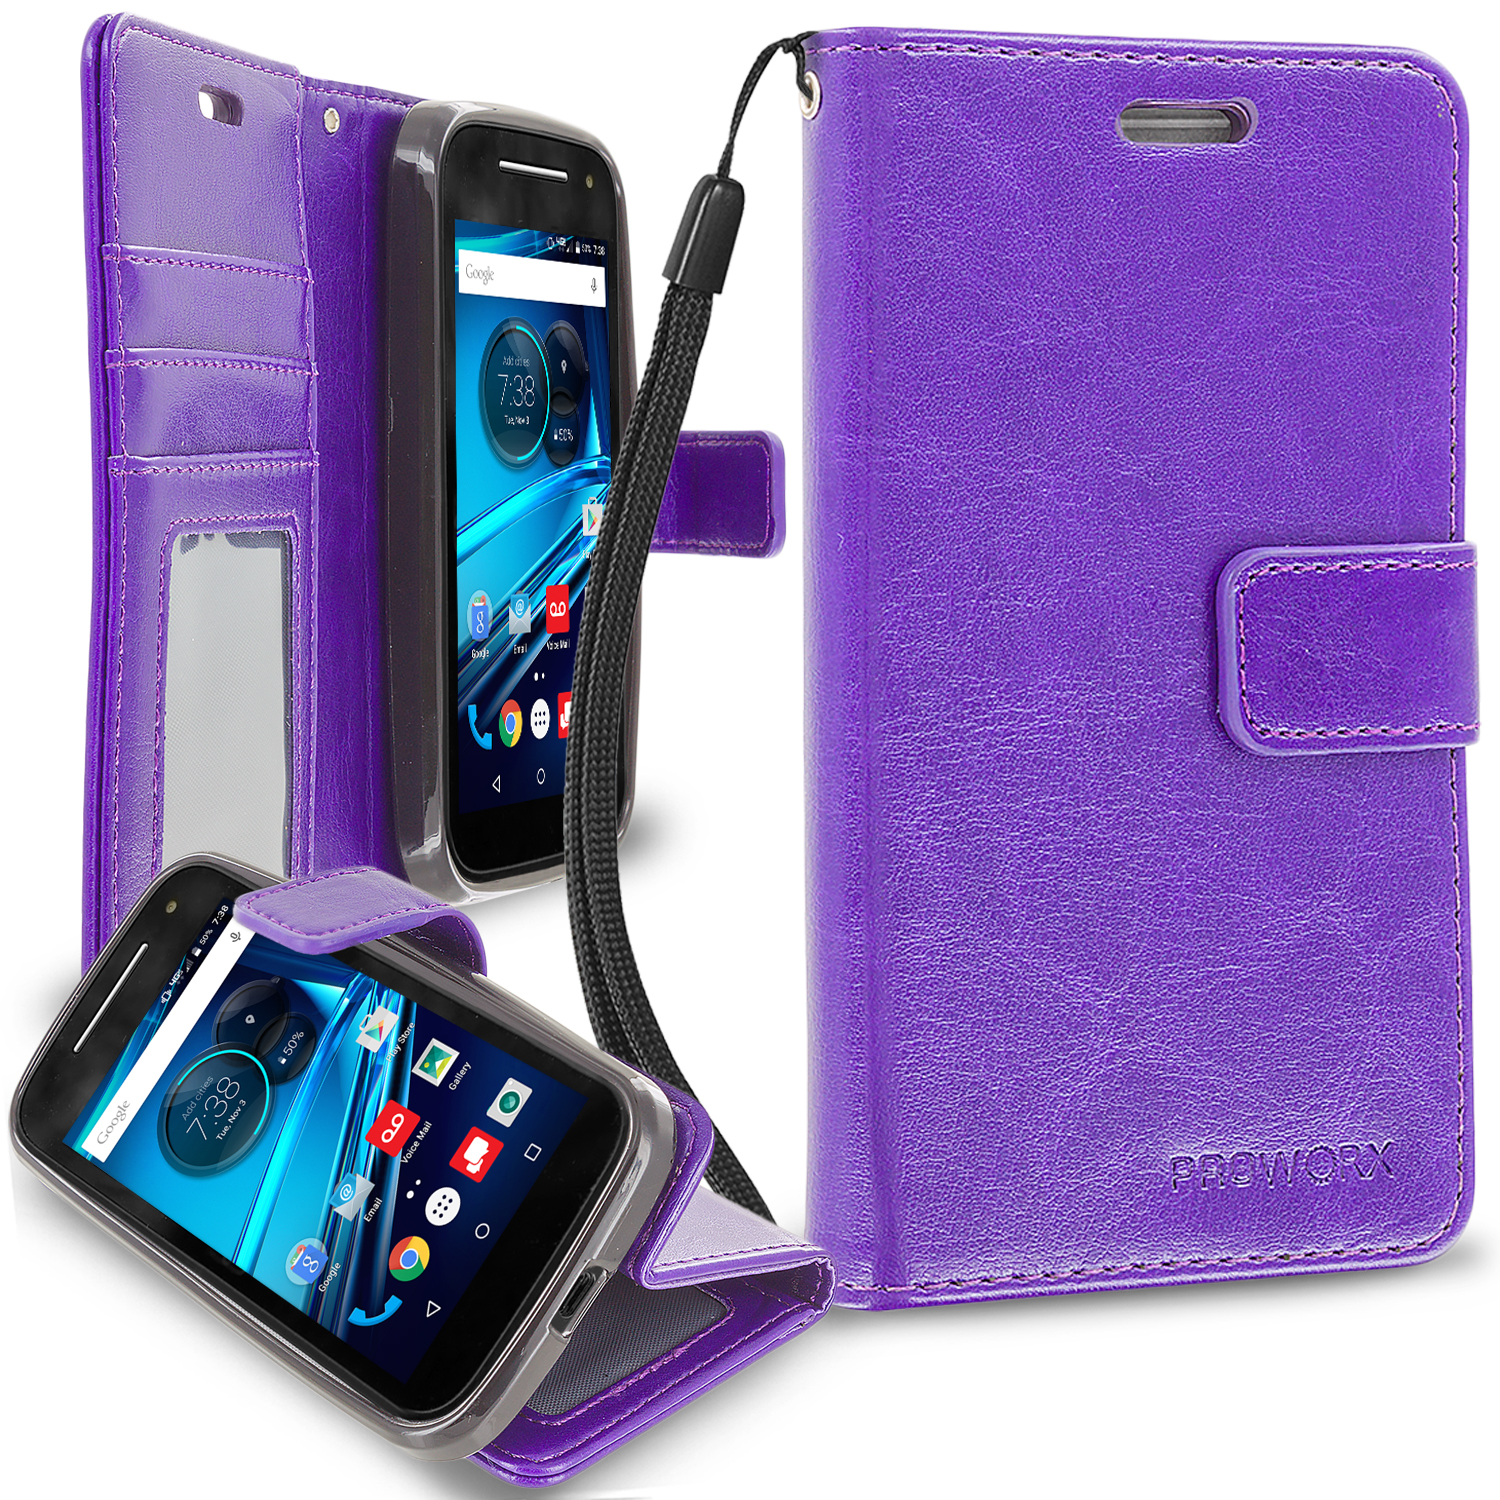 Motorola Moto E LTE 2nd Generation Purple ProWorx Wallet Case Luxury PU Leather Case Cover With Card Slots & Stand